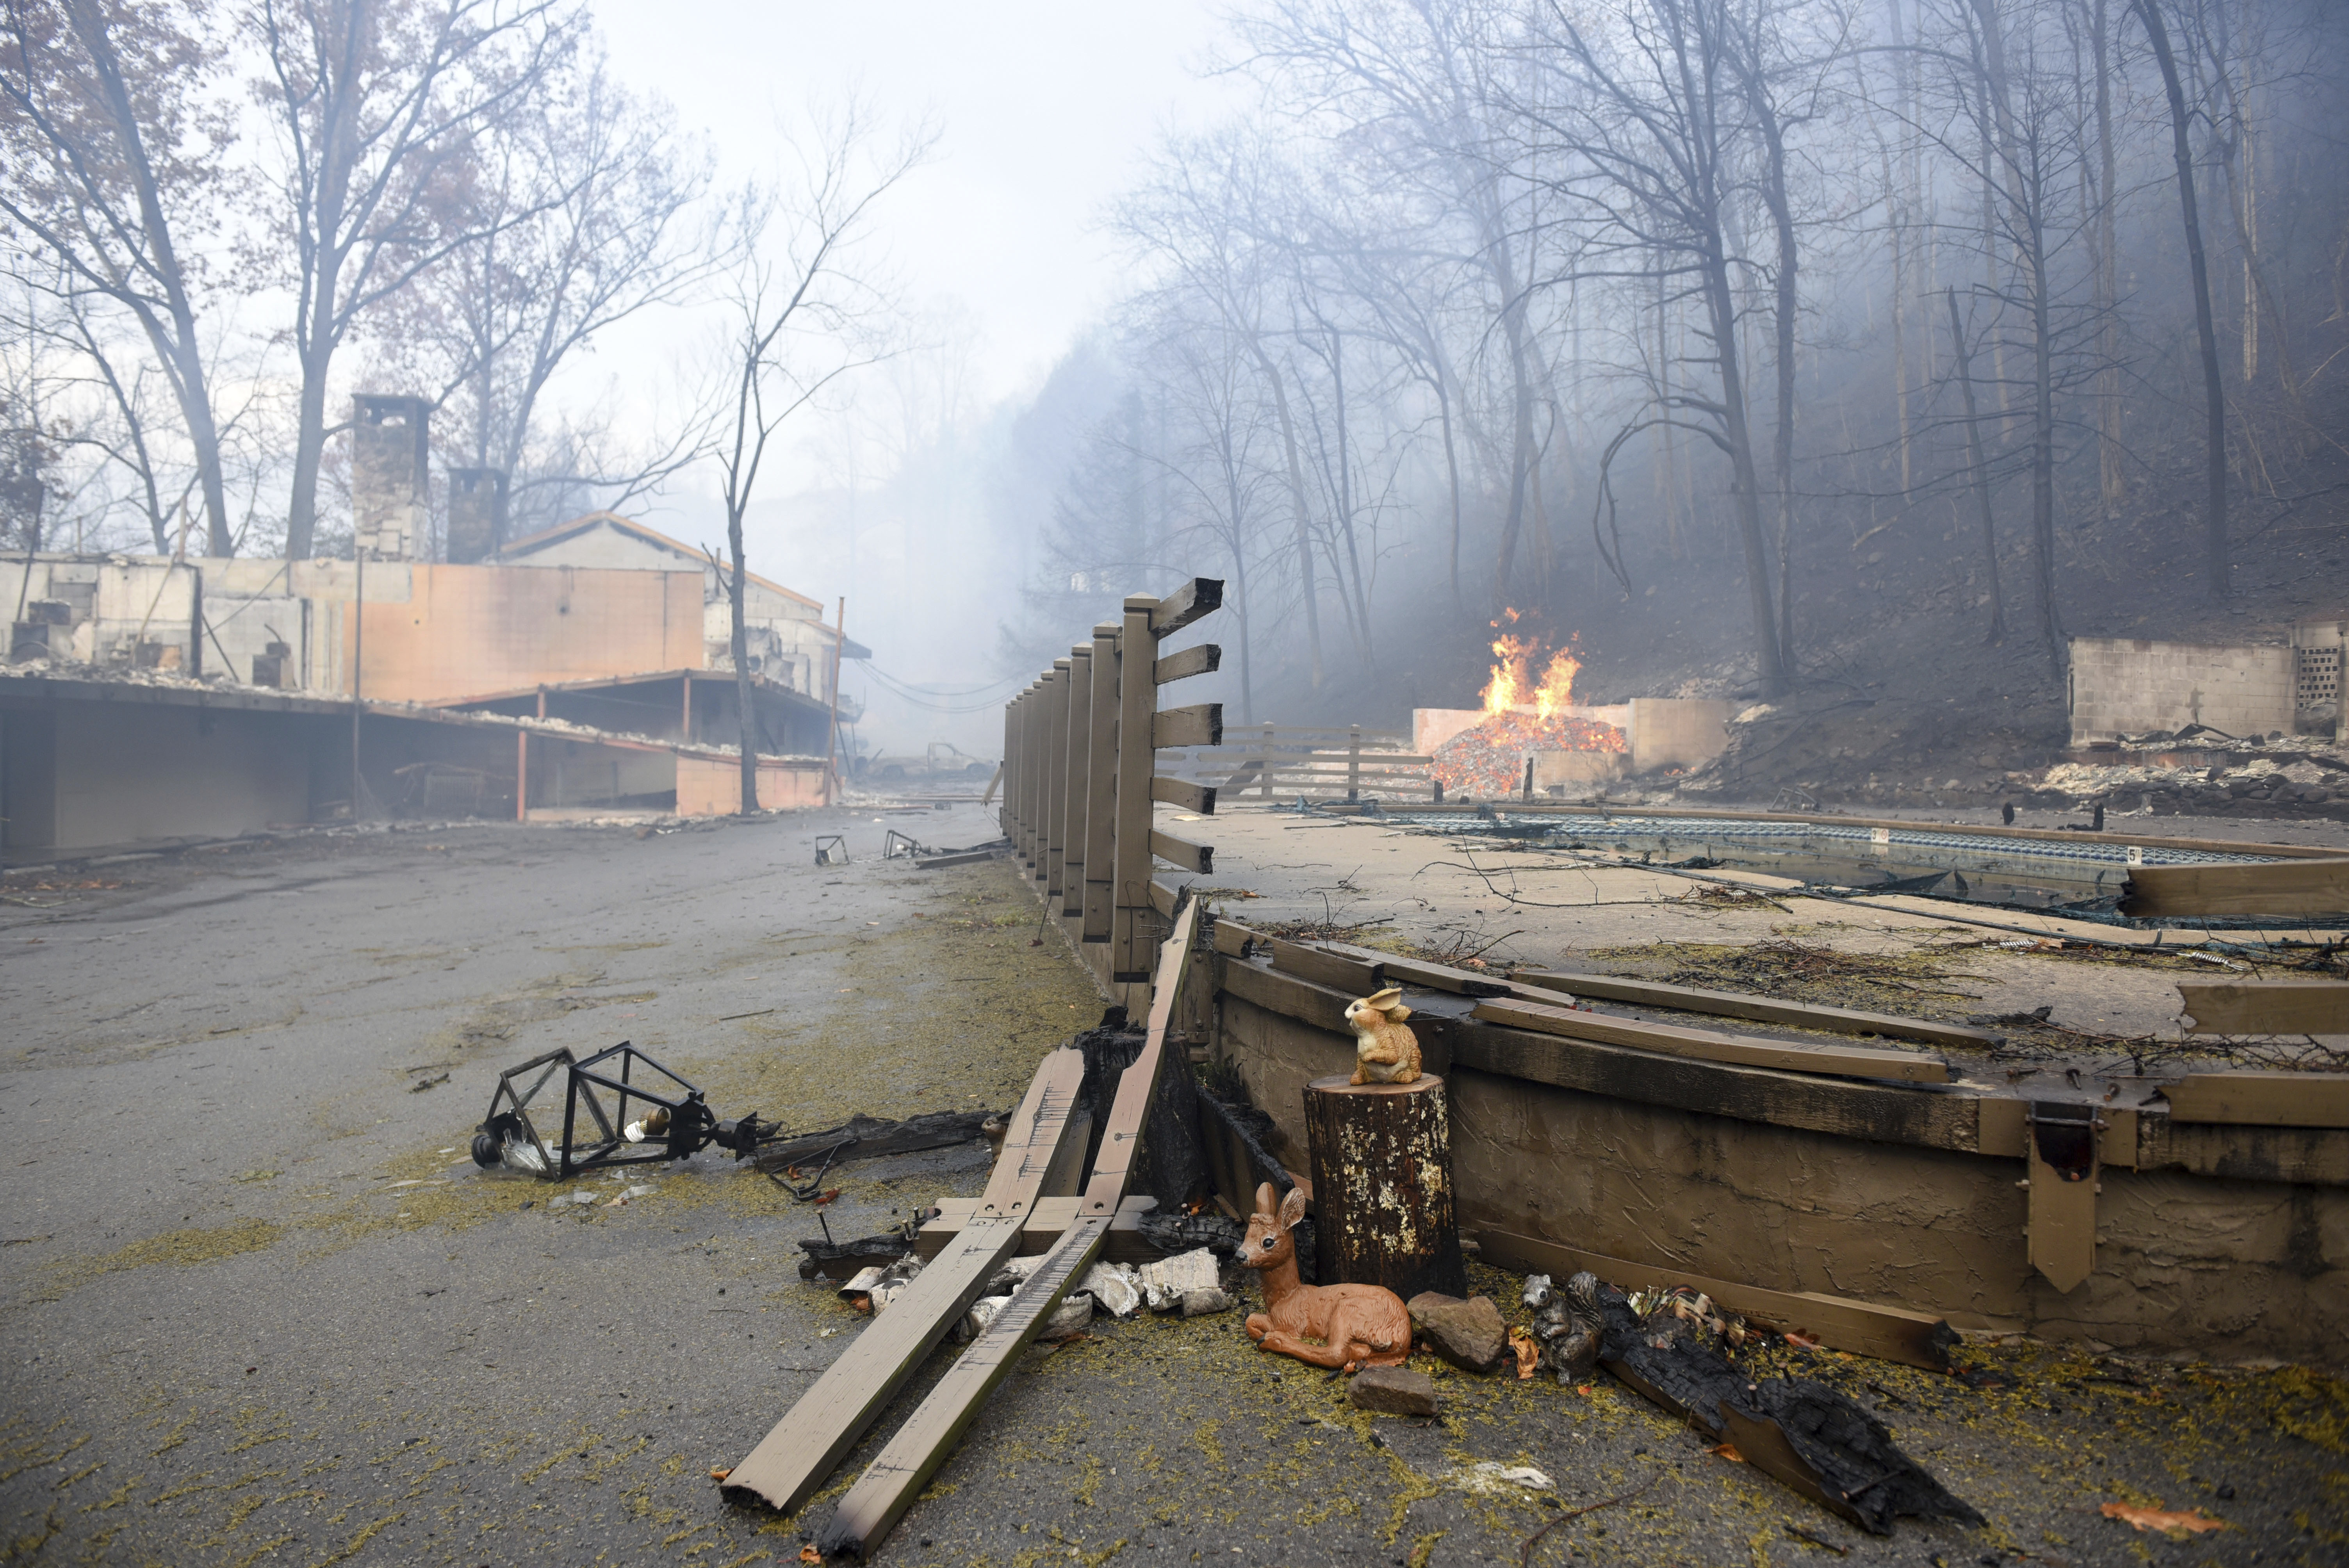 Out of control wild fires have burned part of The Riverhouse Motor Lodge and other businesses